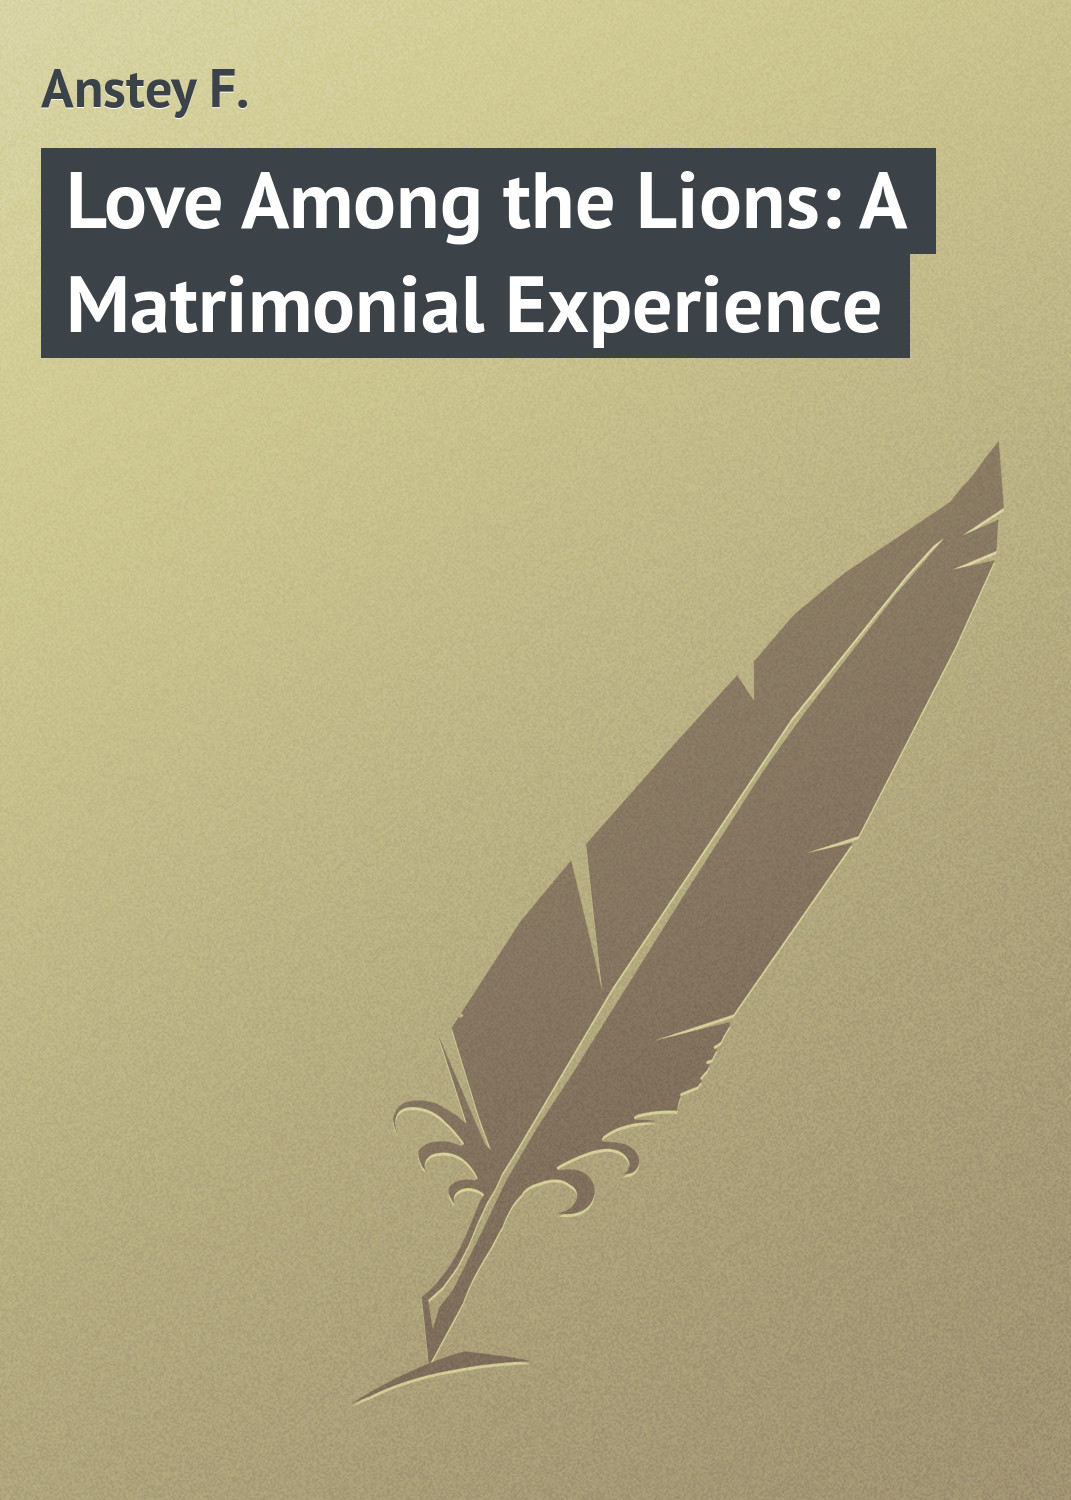 Anstey F. Love Among the Lions: A Matrimonial Experience modernization and the malay matrimonial foodways